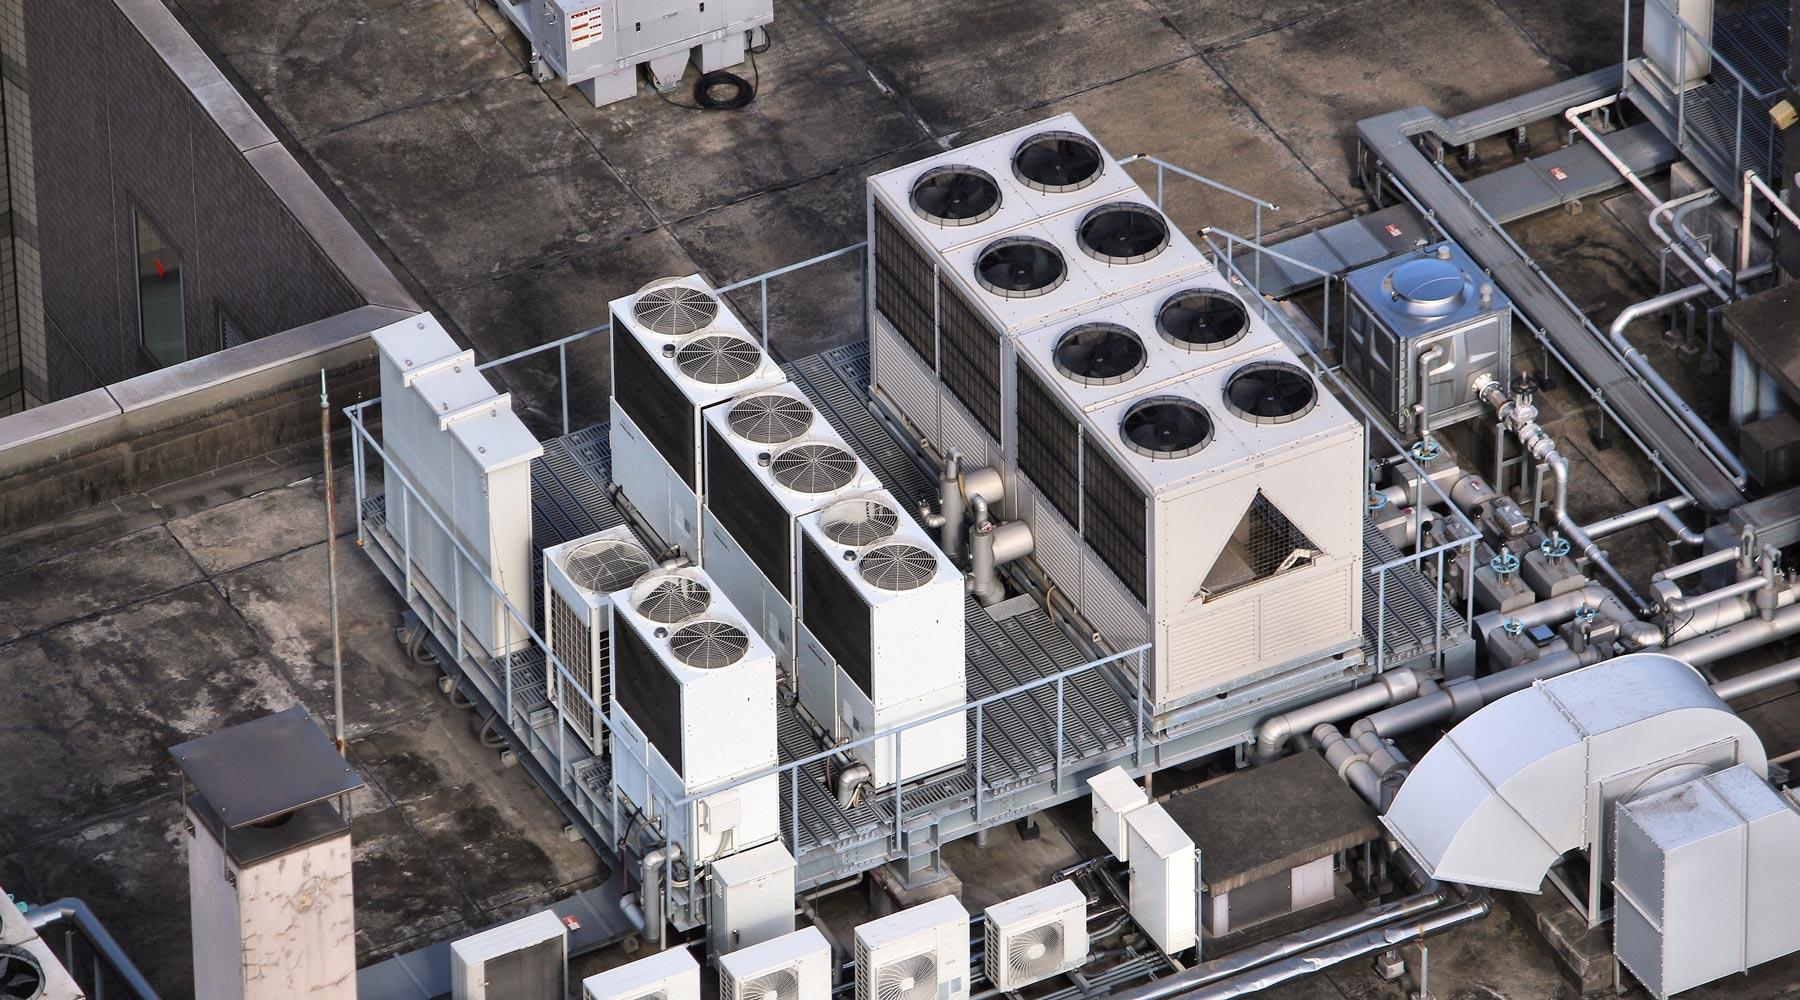 Commercial Air Conditioning on Rooftop